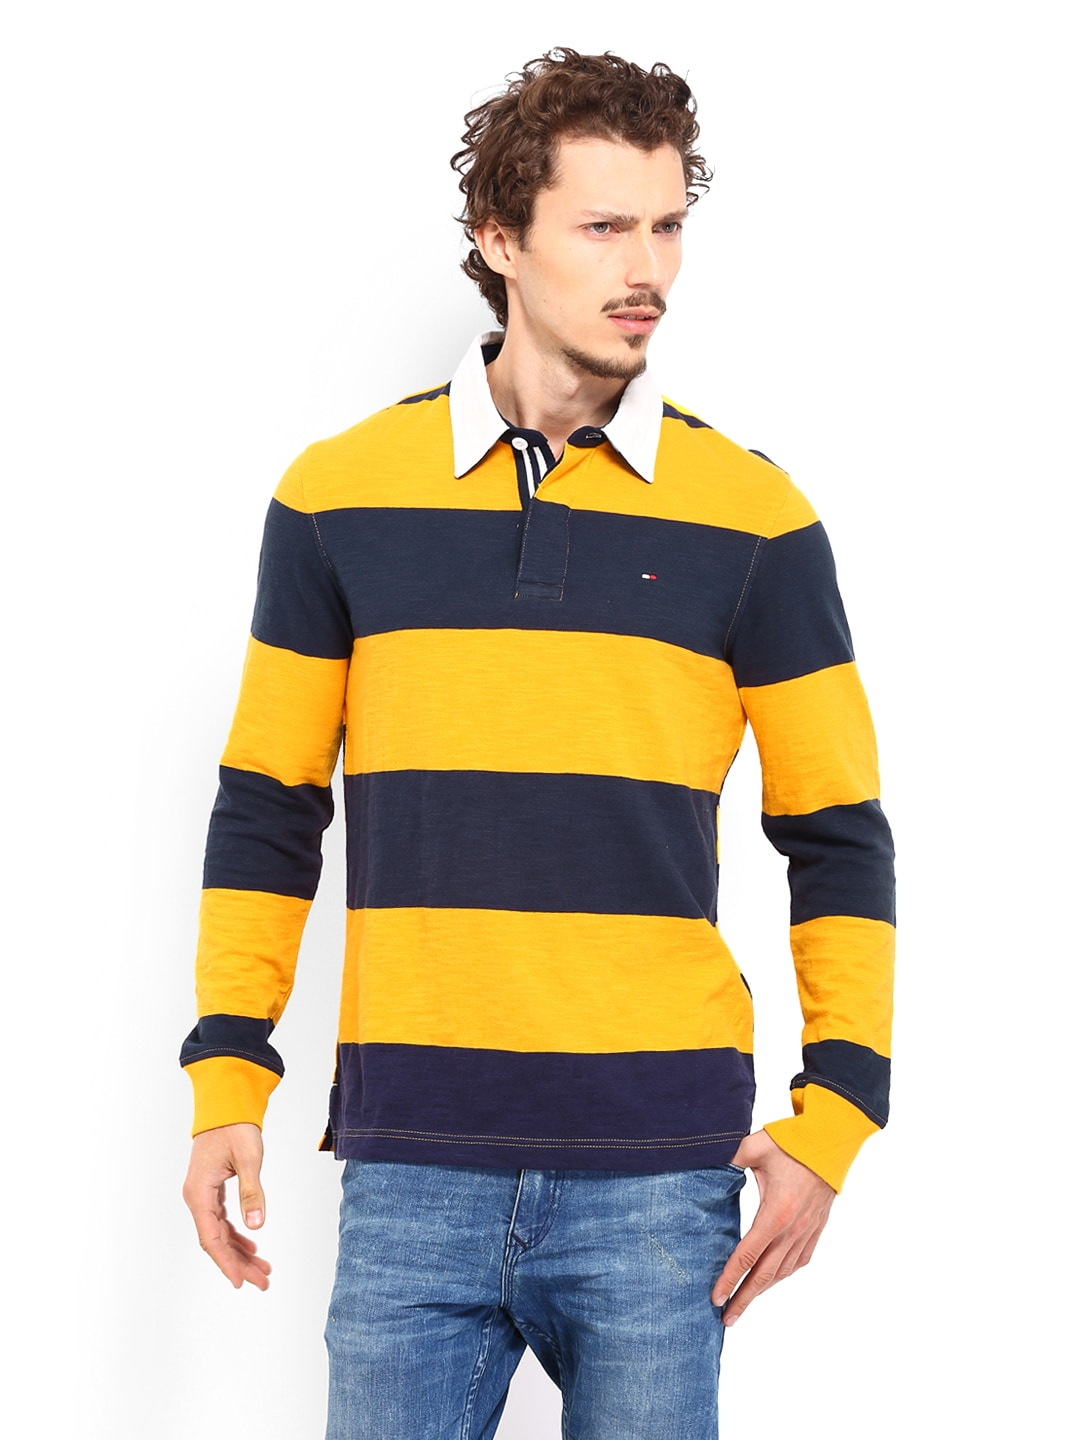 a4cafc5e Tommy hilfiger a4cmh007 Men Yellow Navy Striped Padington Rugby Polo T  Shirt- Price in India